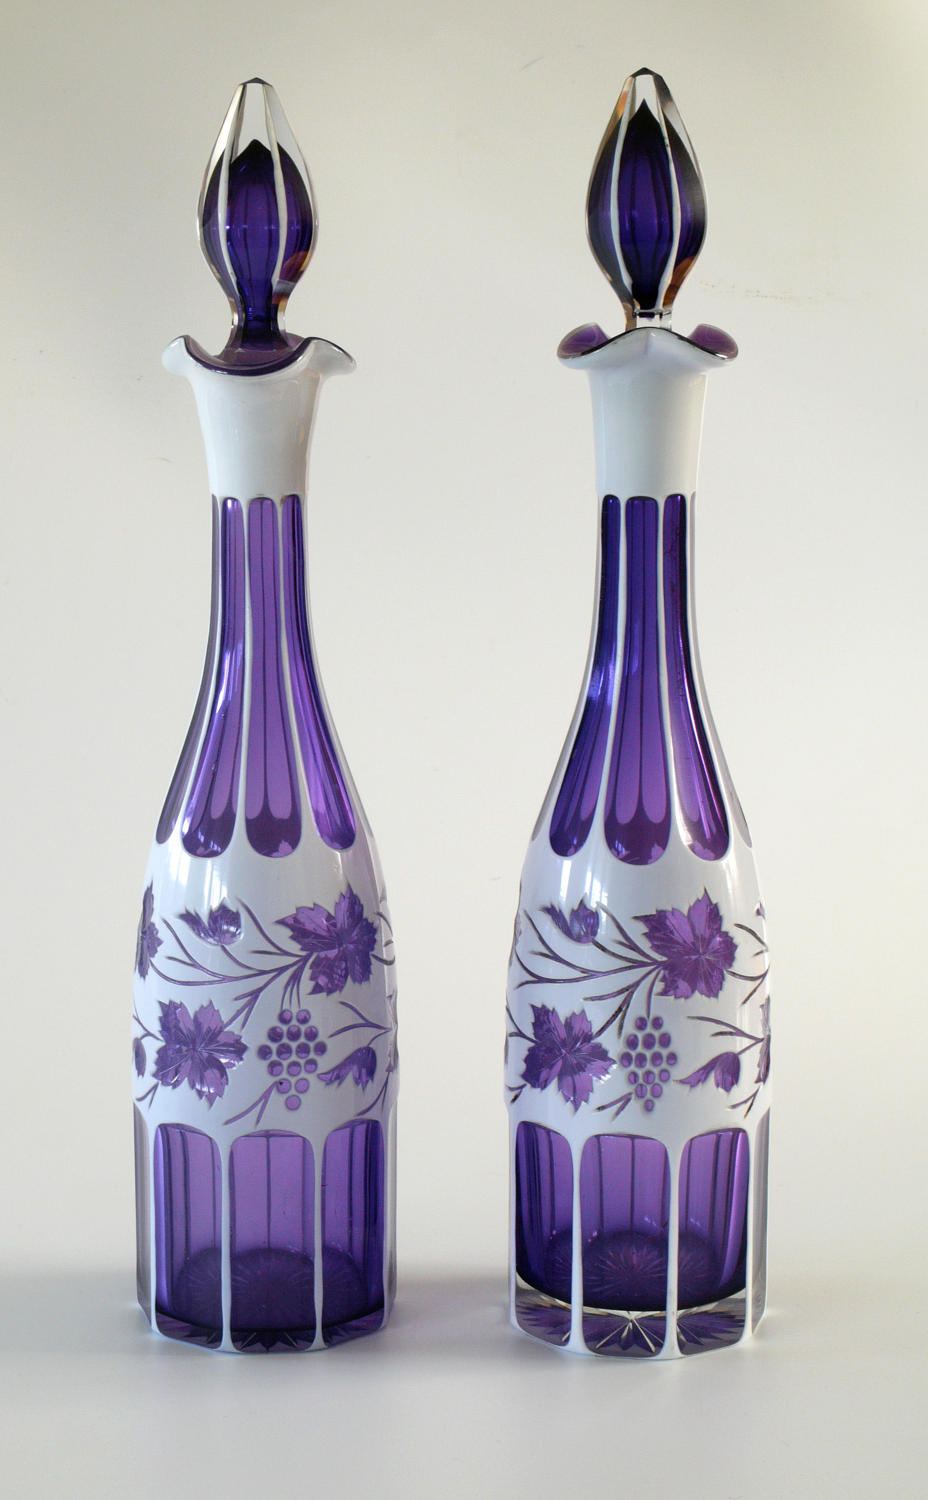 A pair of white and purple overlay tall decanters